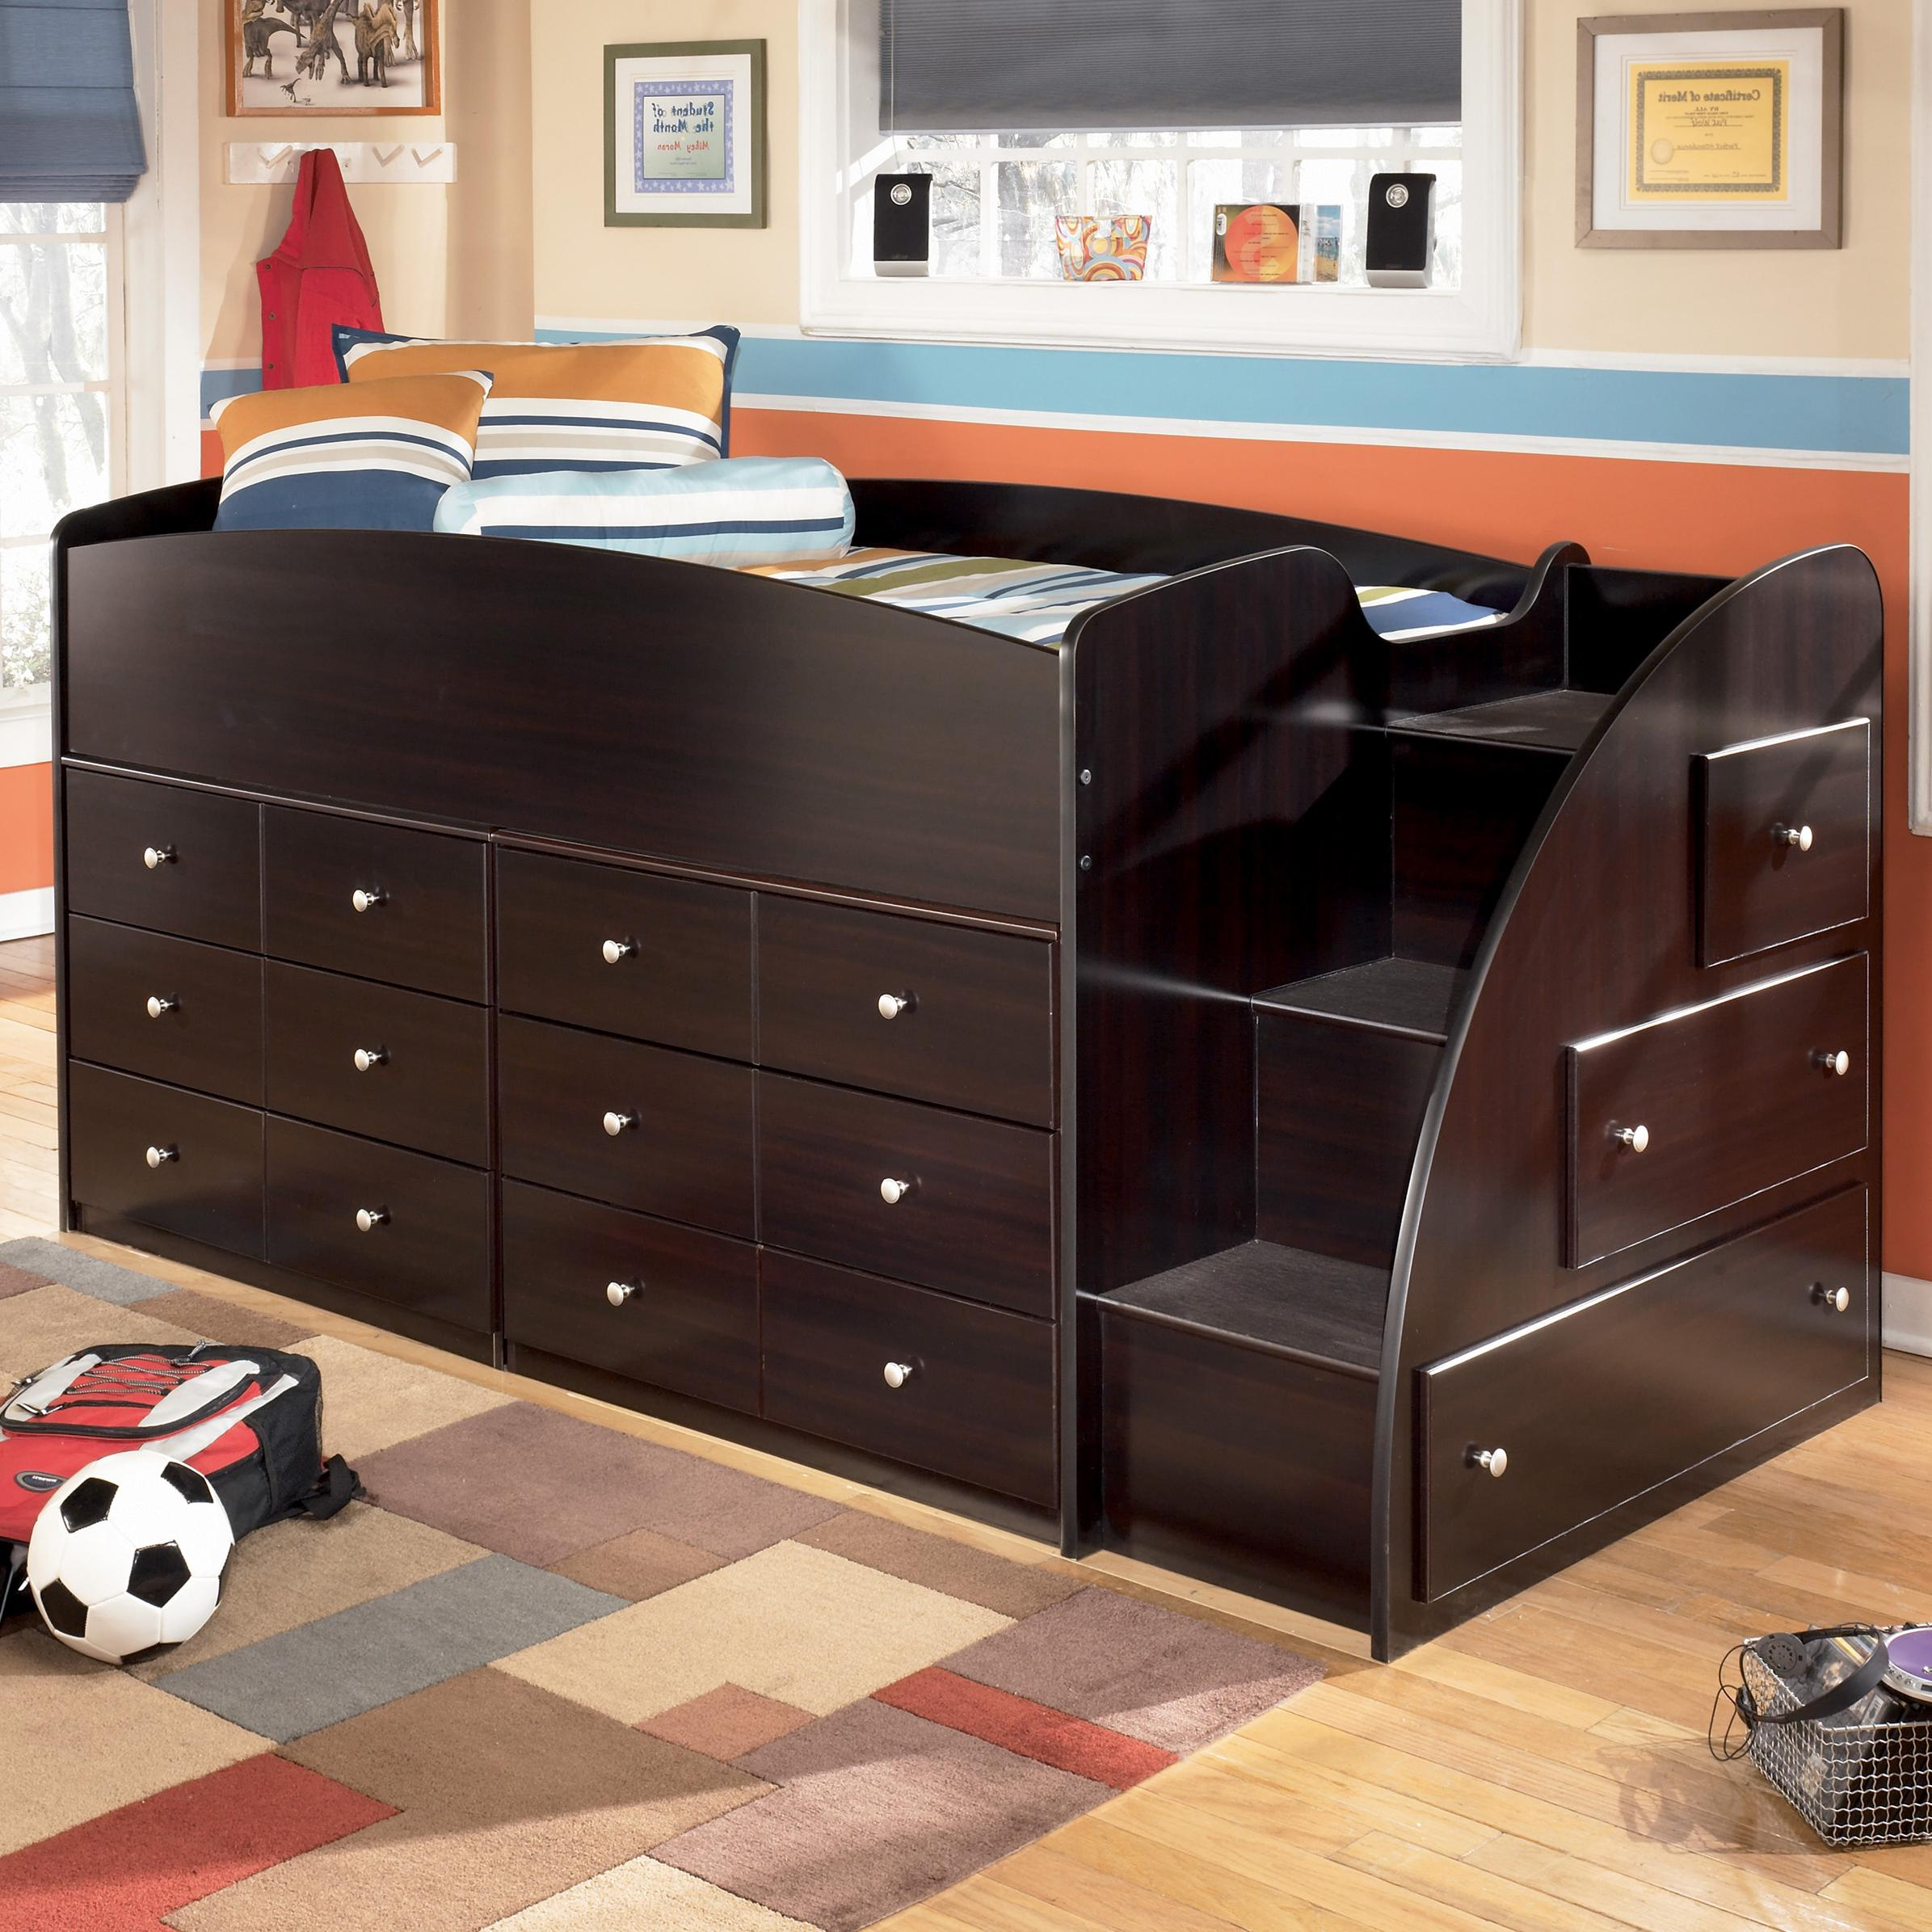 Signature Design by Ashley Embrace Twin Loft Bed with Chest Storage - Item Number: B239-68T+13R+2x19